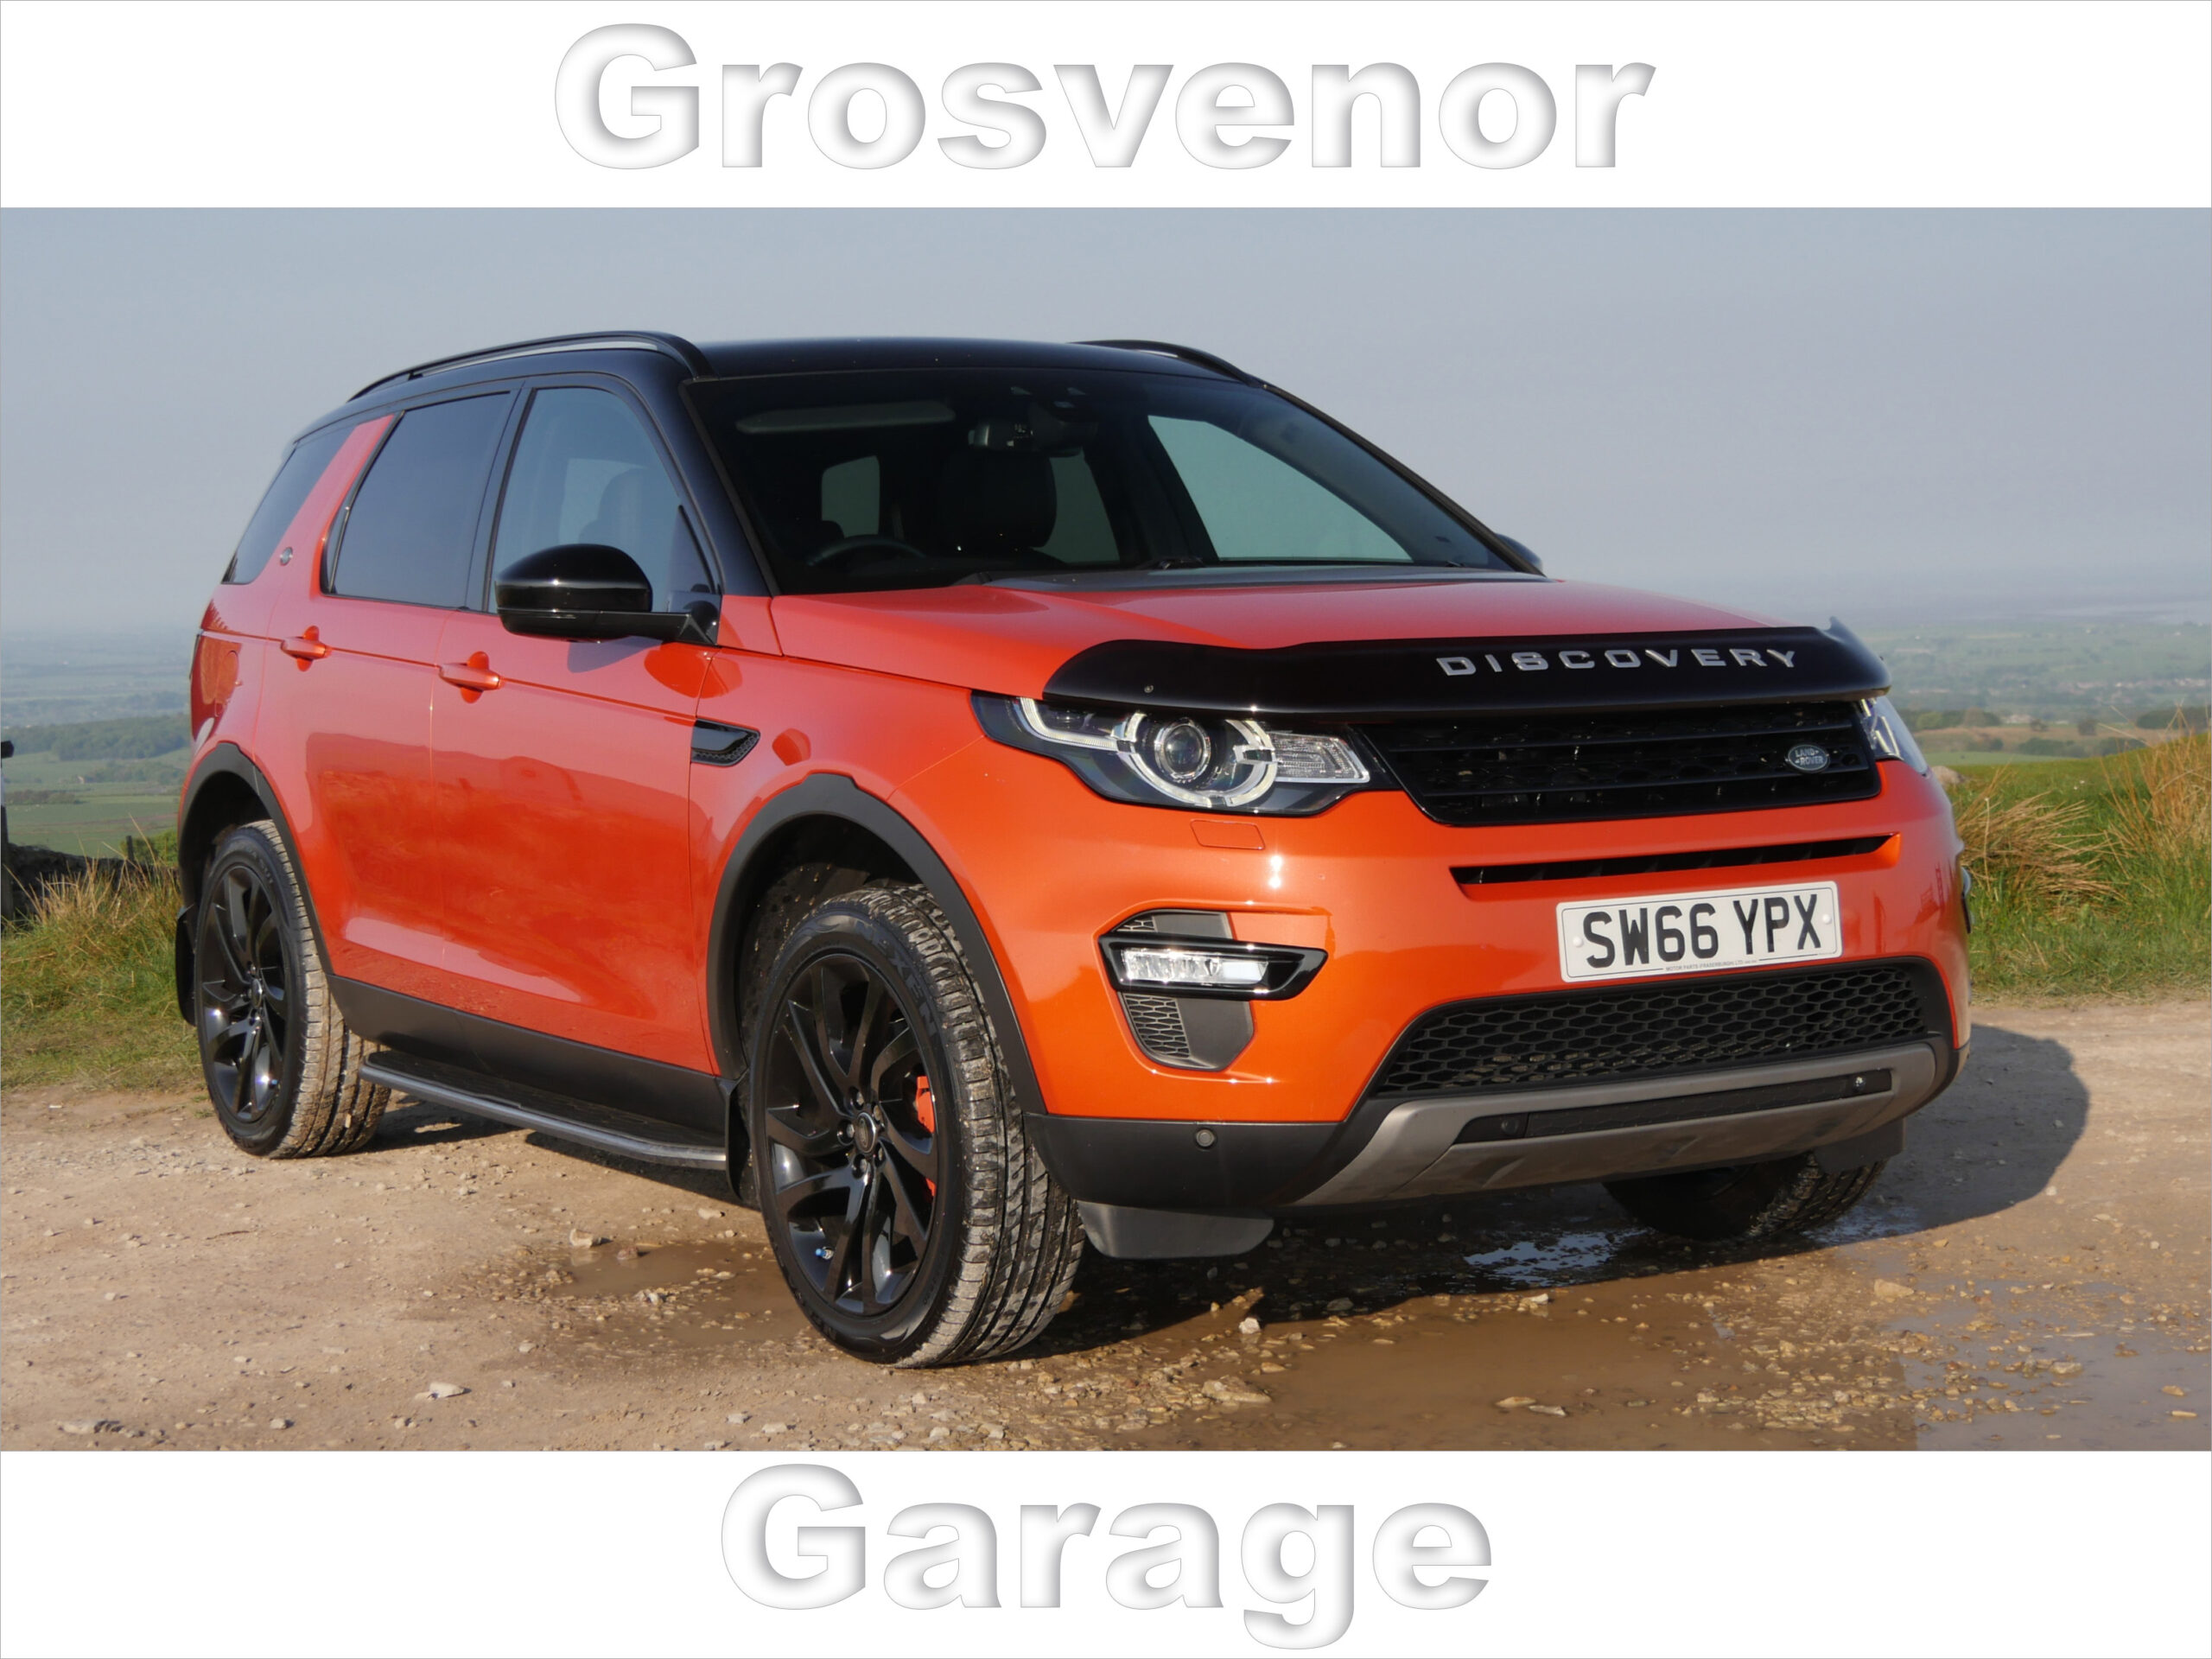 2016 (66) LAND ROVER DISCOVERY SPORT 2.0 TD4 HSE BLACK 5DR AUTOMATIC